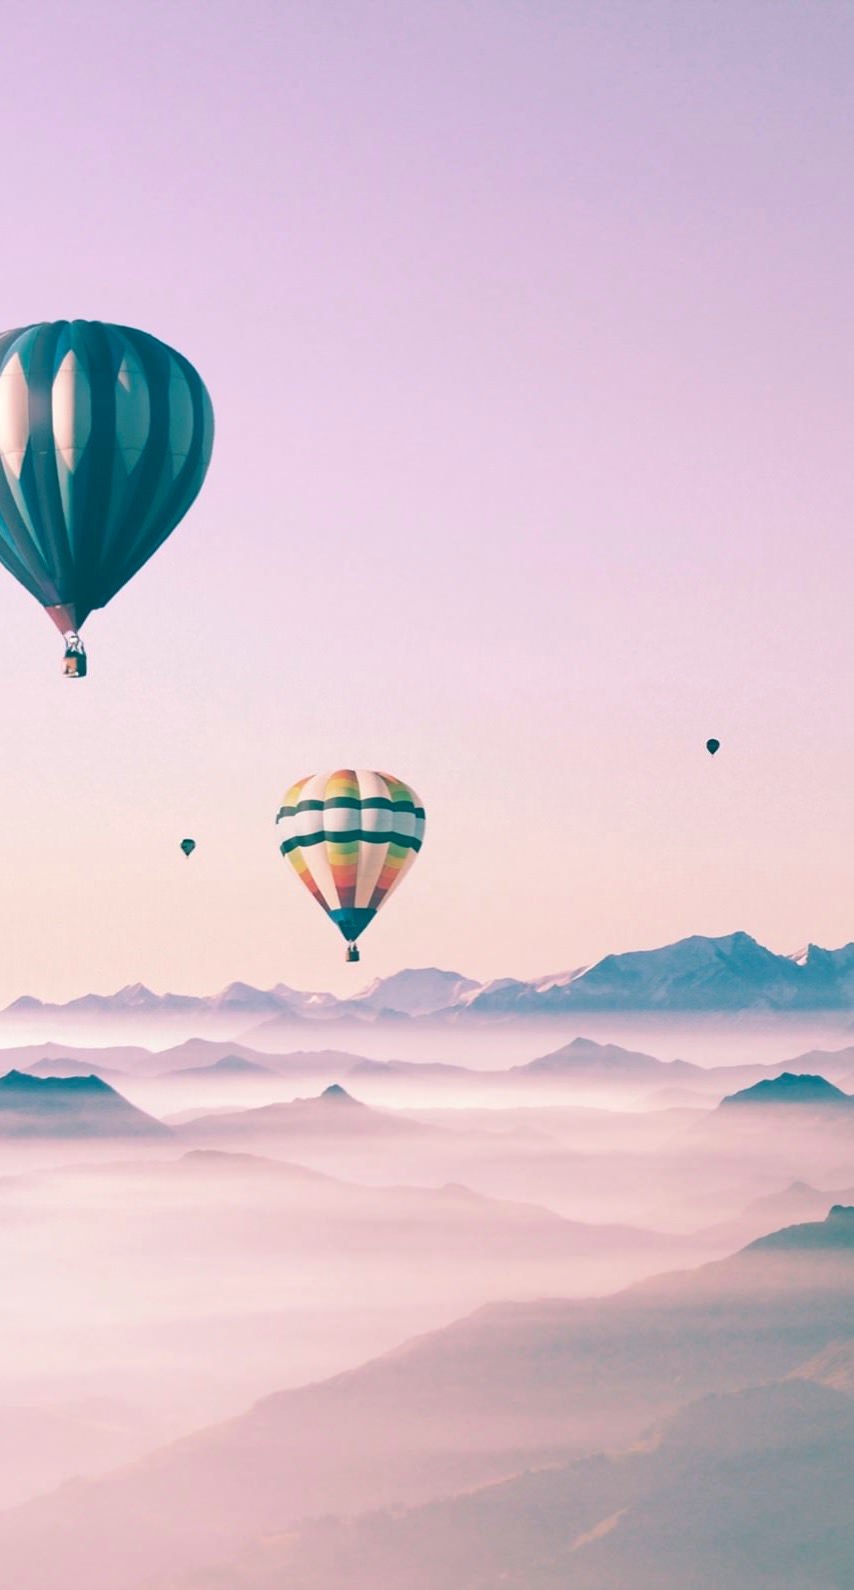 Cute Landscape Sky Balloon For Girls Wallpaper Sc Iphone7